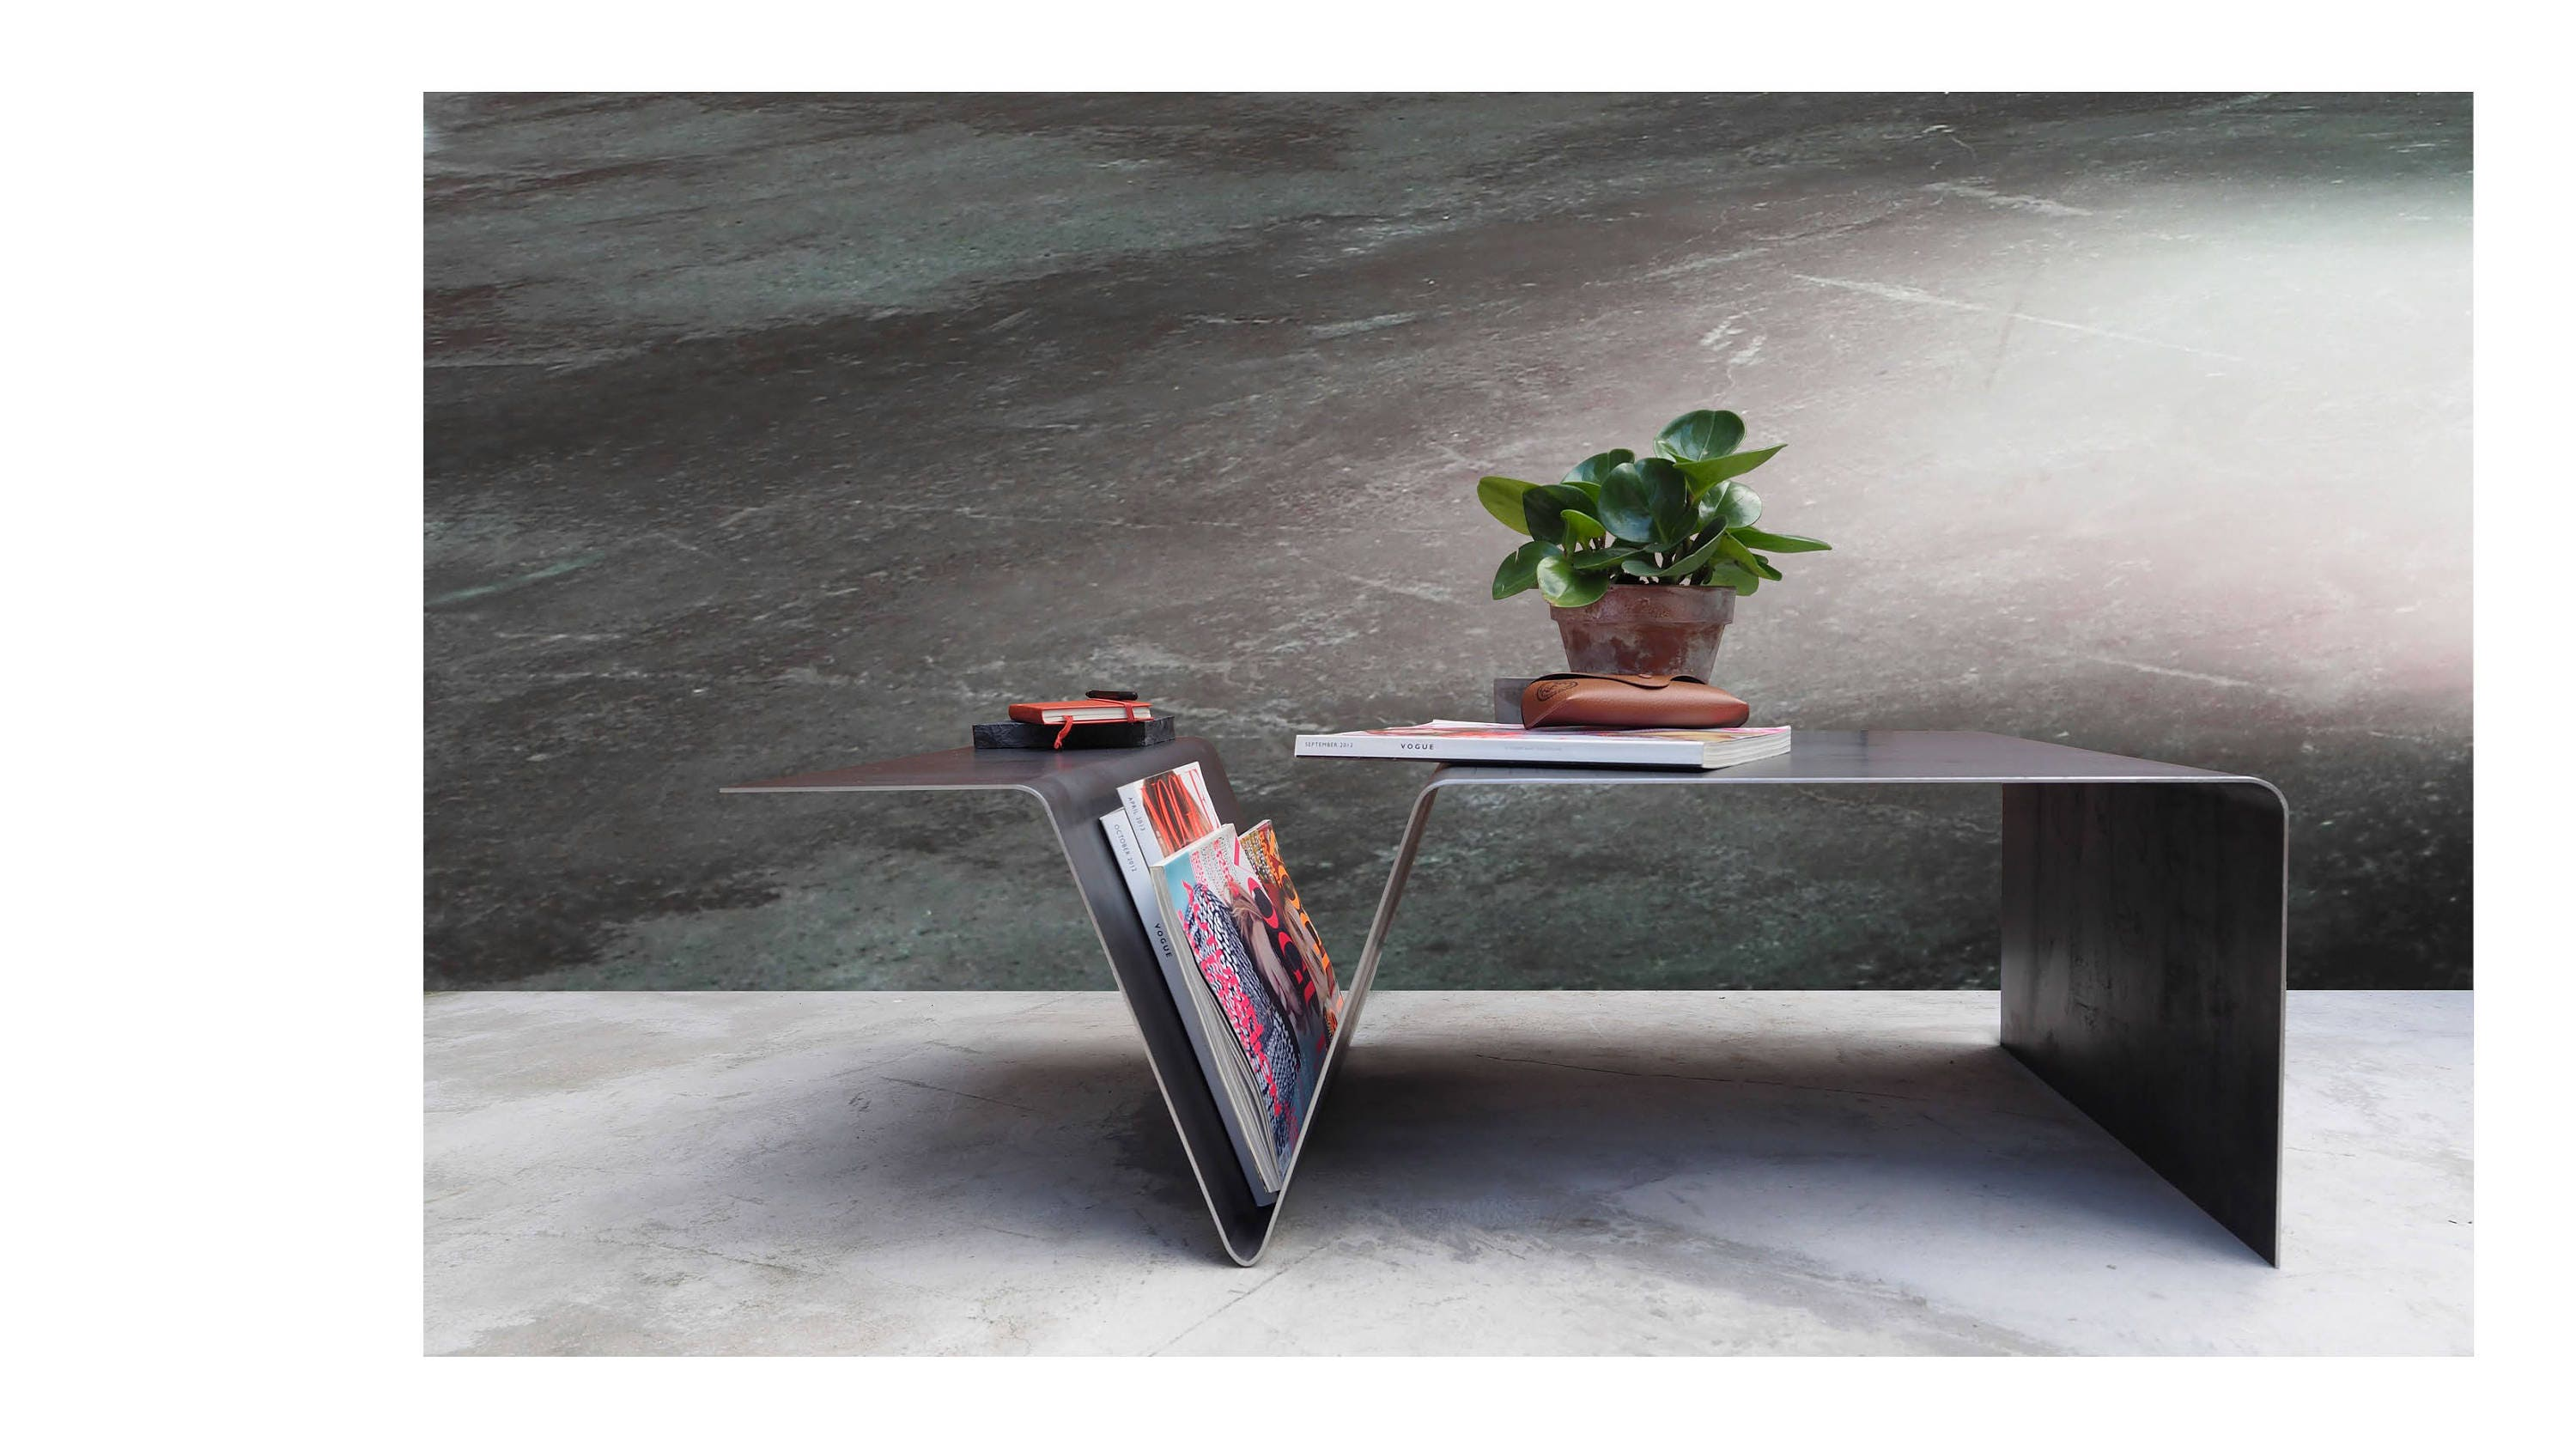 Steel Coffee Table  Handmade Furniture  Low Level Table  Industrial design  Small Table Magazine Table  Home Decor